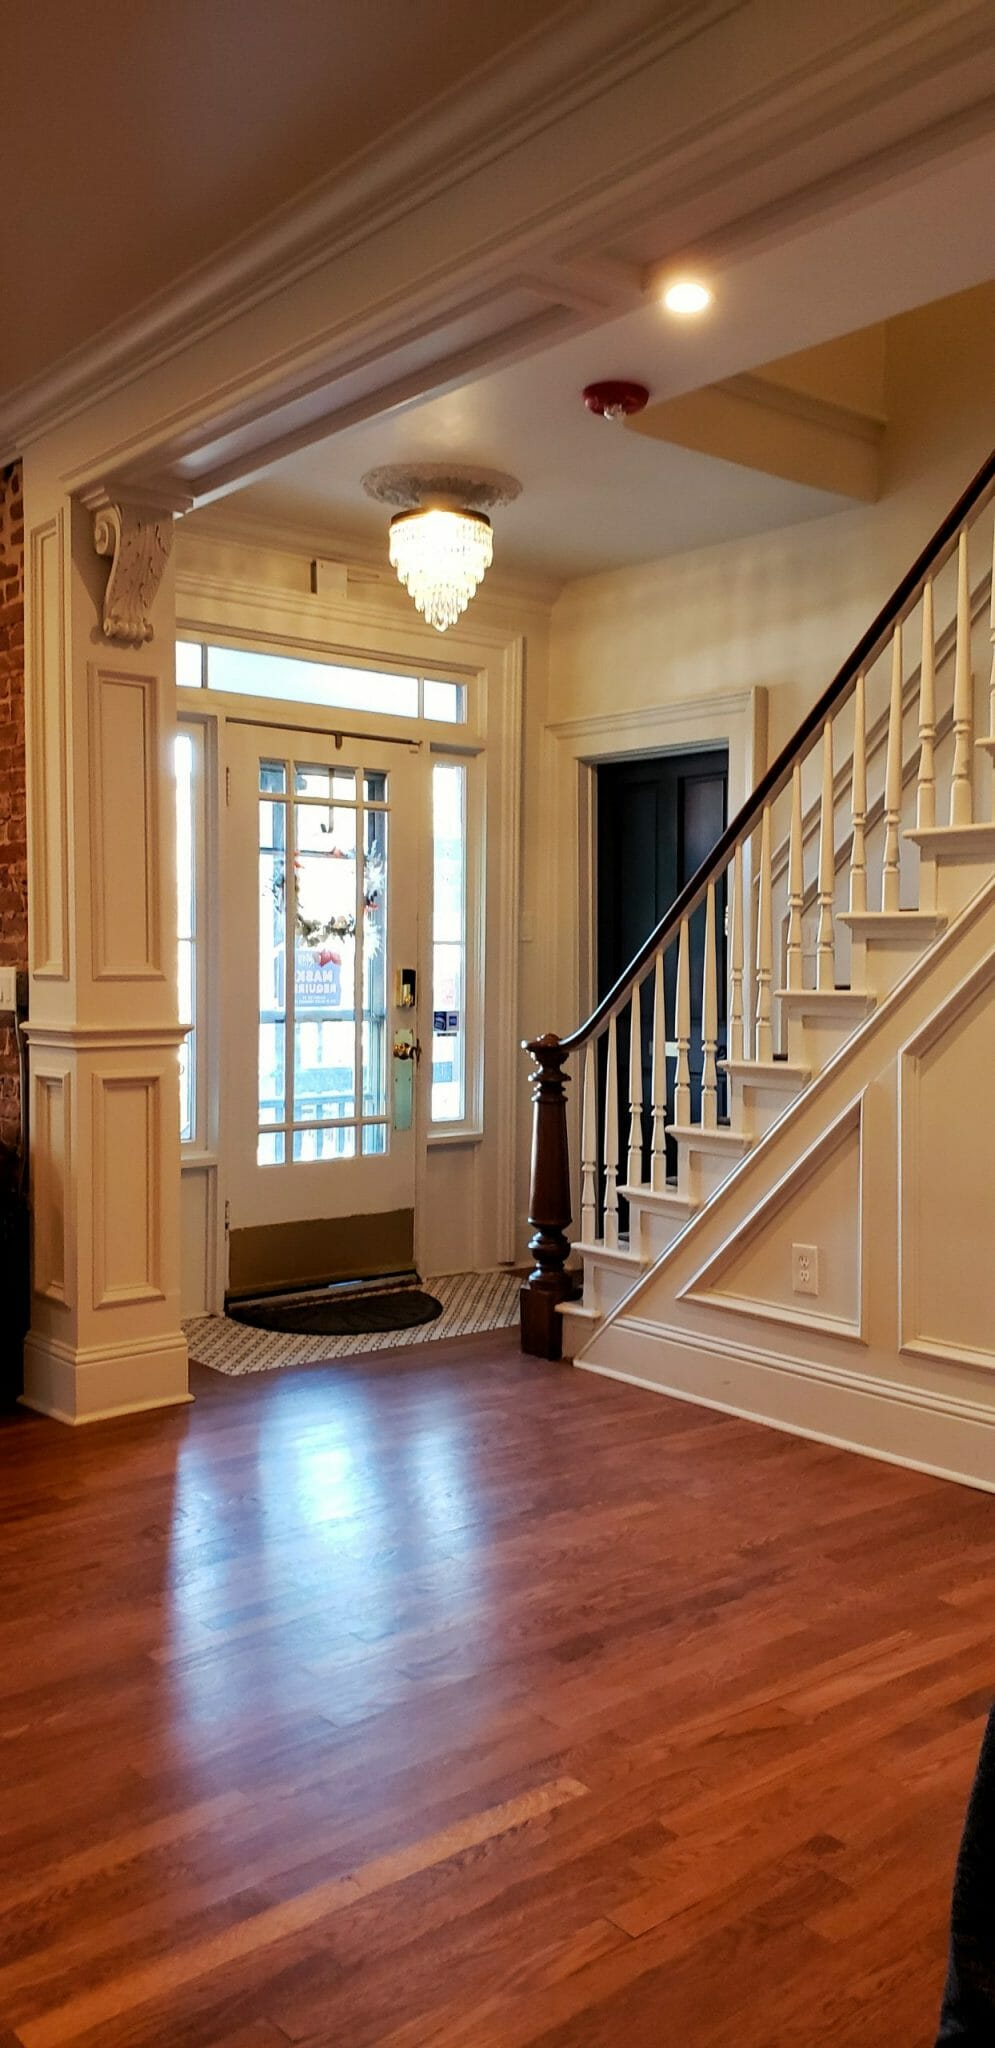 Historic details in the hotel entryway - original hardwood floors, a mini chandelier and intricate woodwork on the stairs